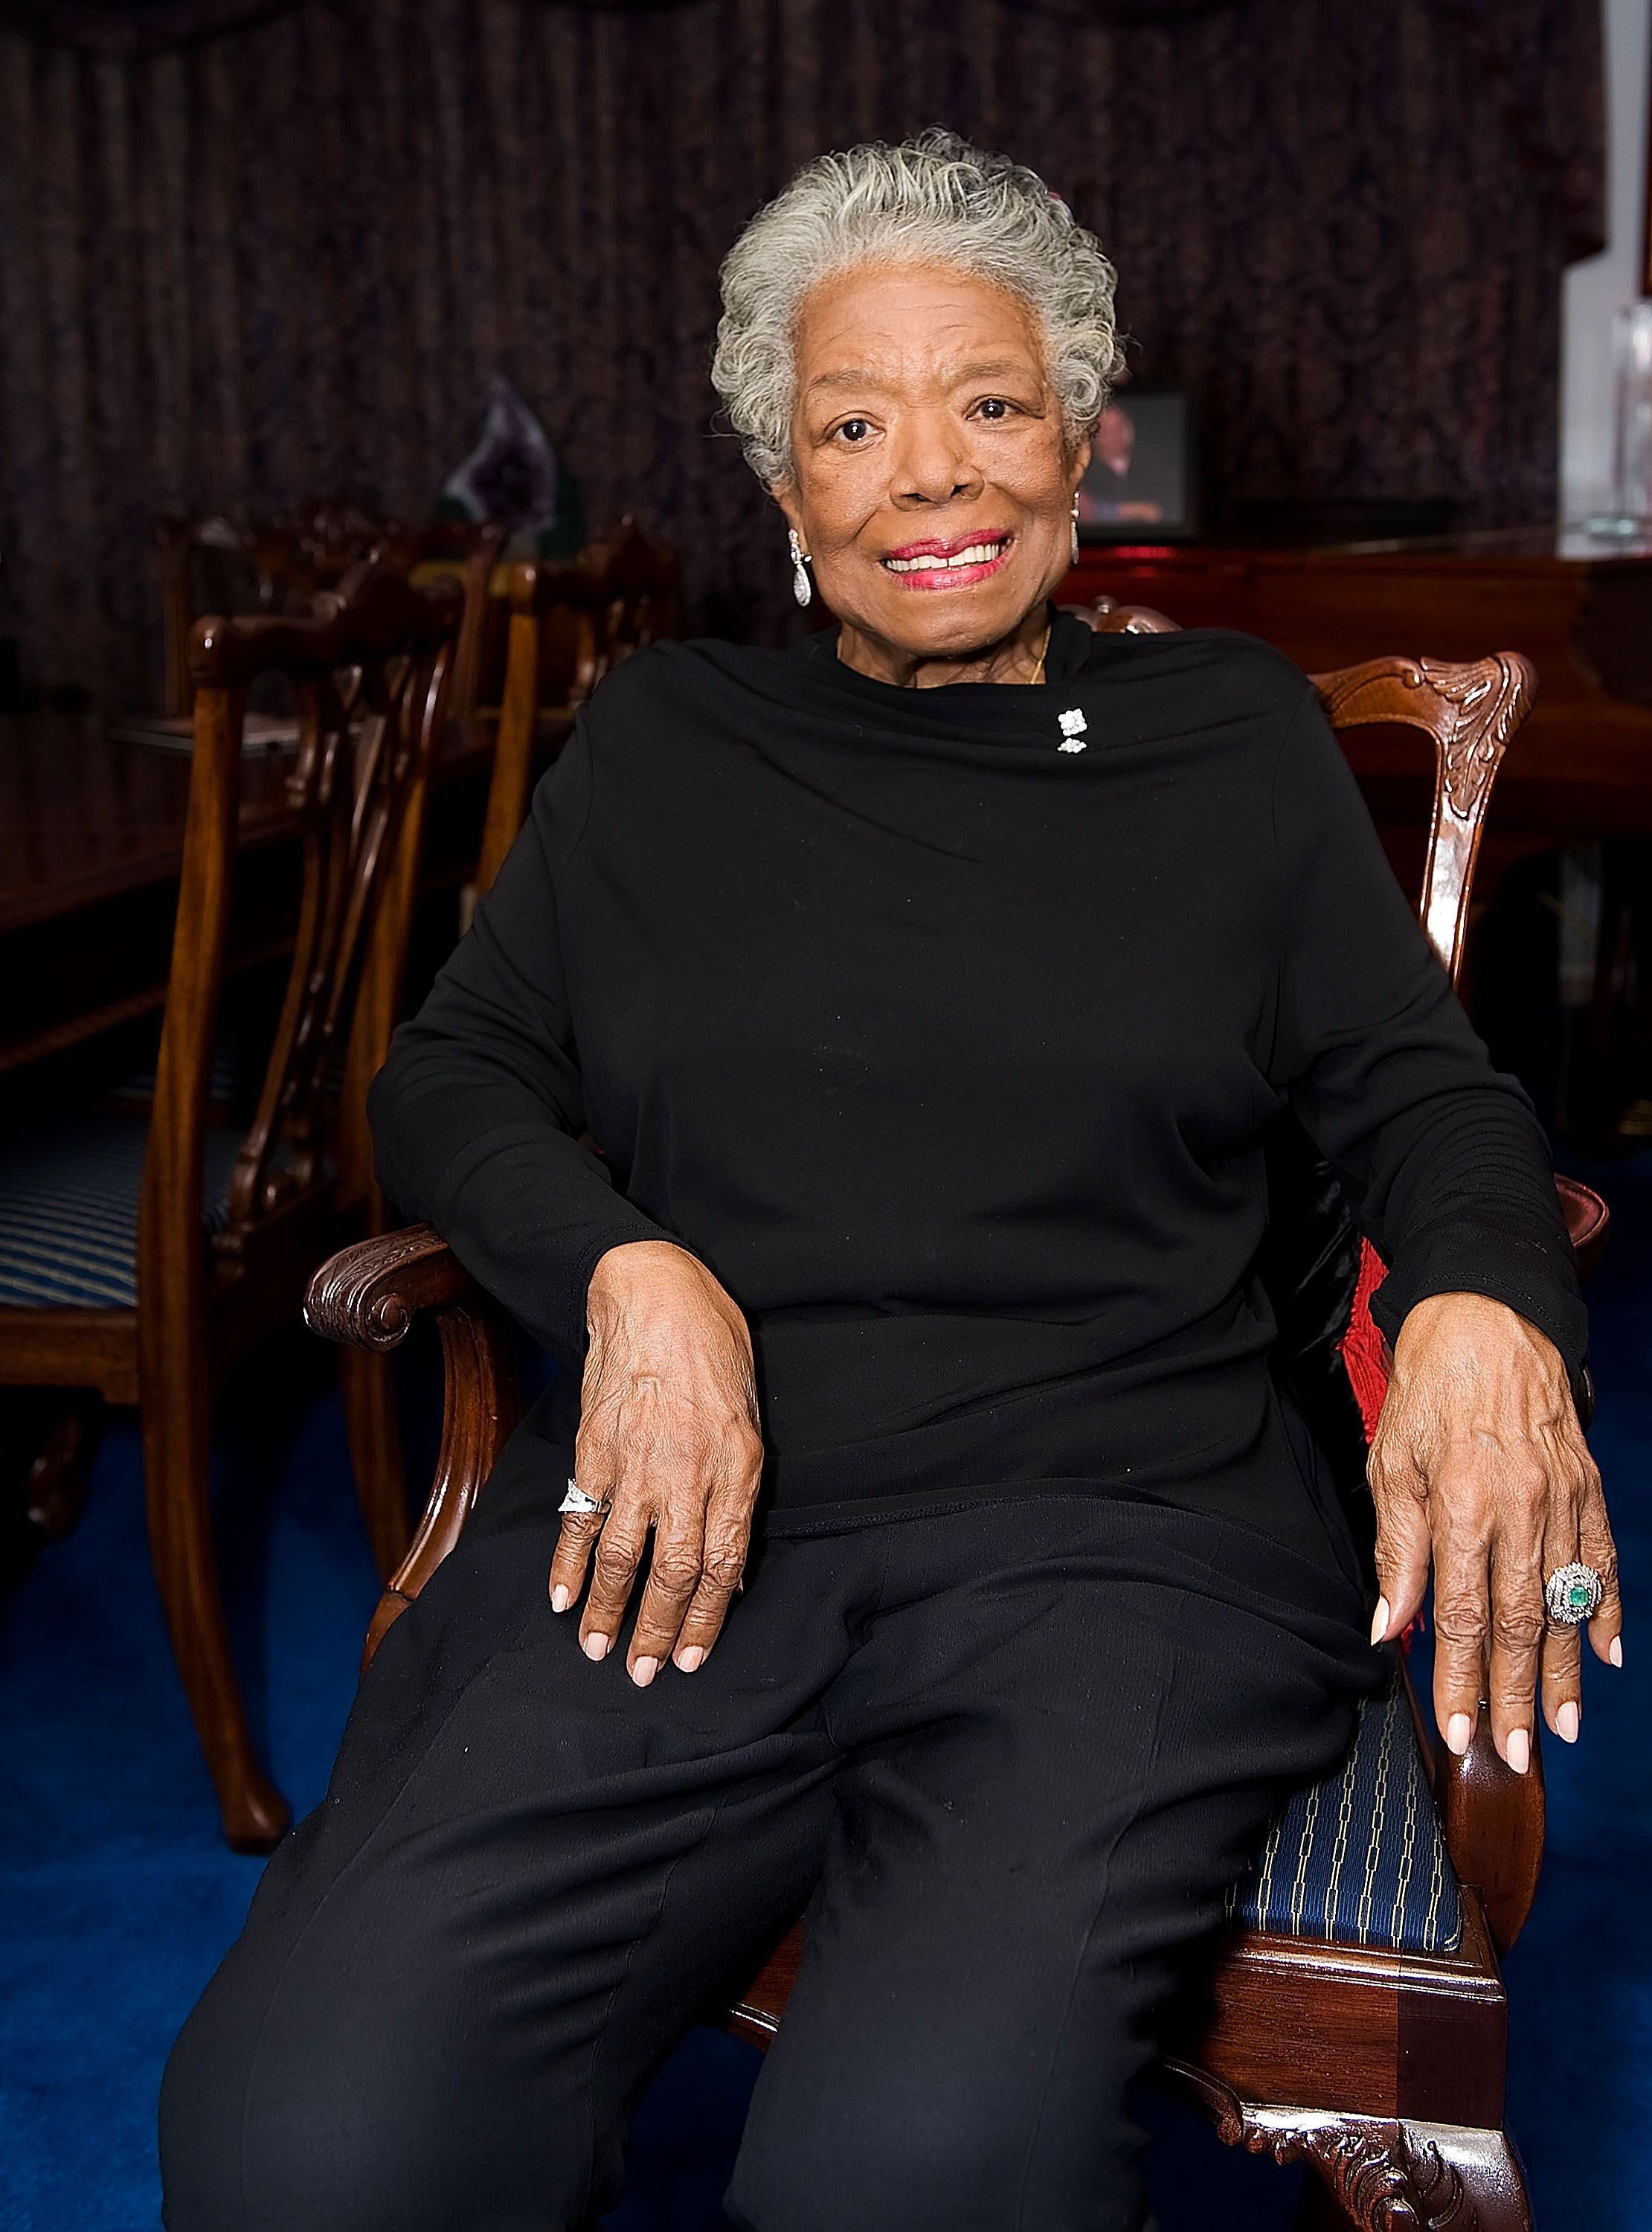 Maya Angelou during the Special Recognition Event for Dr. Maya Angelou at Dr. Angelou's home June 21, 2010 in Winston-Salem, North Carolina. | Source: Getty Images